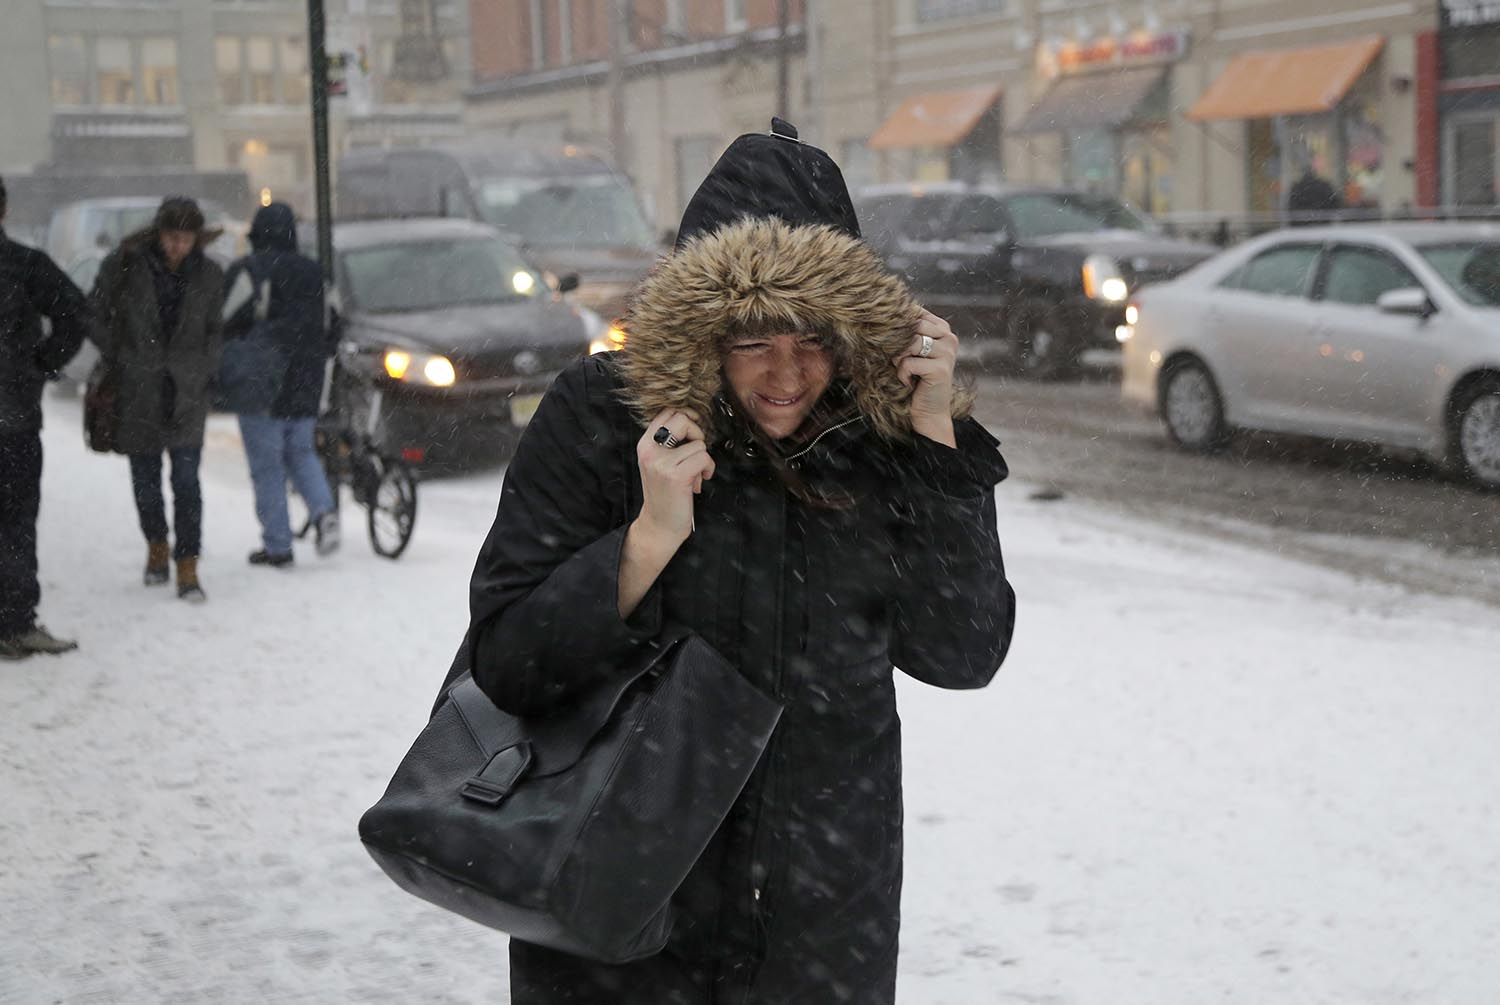 "<div class=""meta image-caption""><div class=""origin-logo origin-image ap""><span>AP</span></div><span class=""caption-text"">A woman walks through the snow and wind as she makes her way to the train station in Hoboken, N.J., Thursday, Jan. 4, 2018. (AP Photo/Seth Wenig)</span></div>"